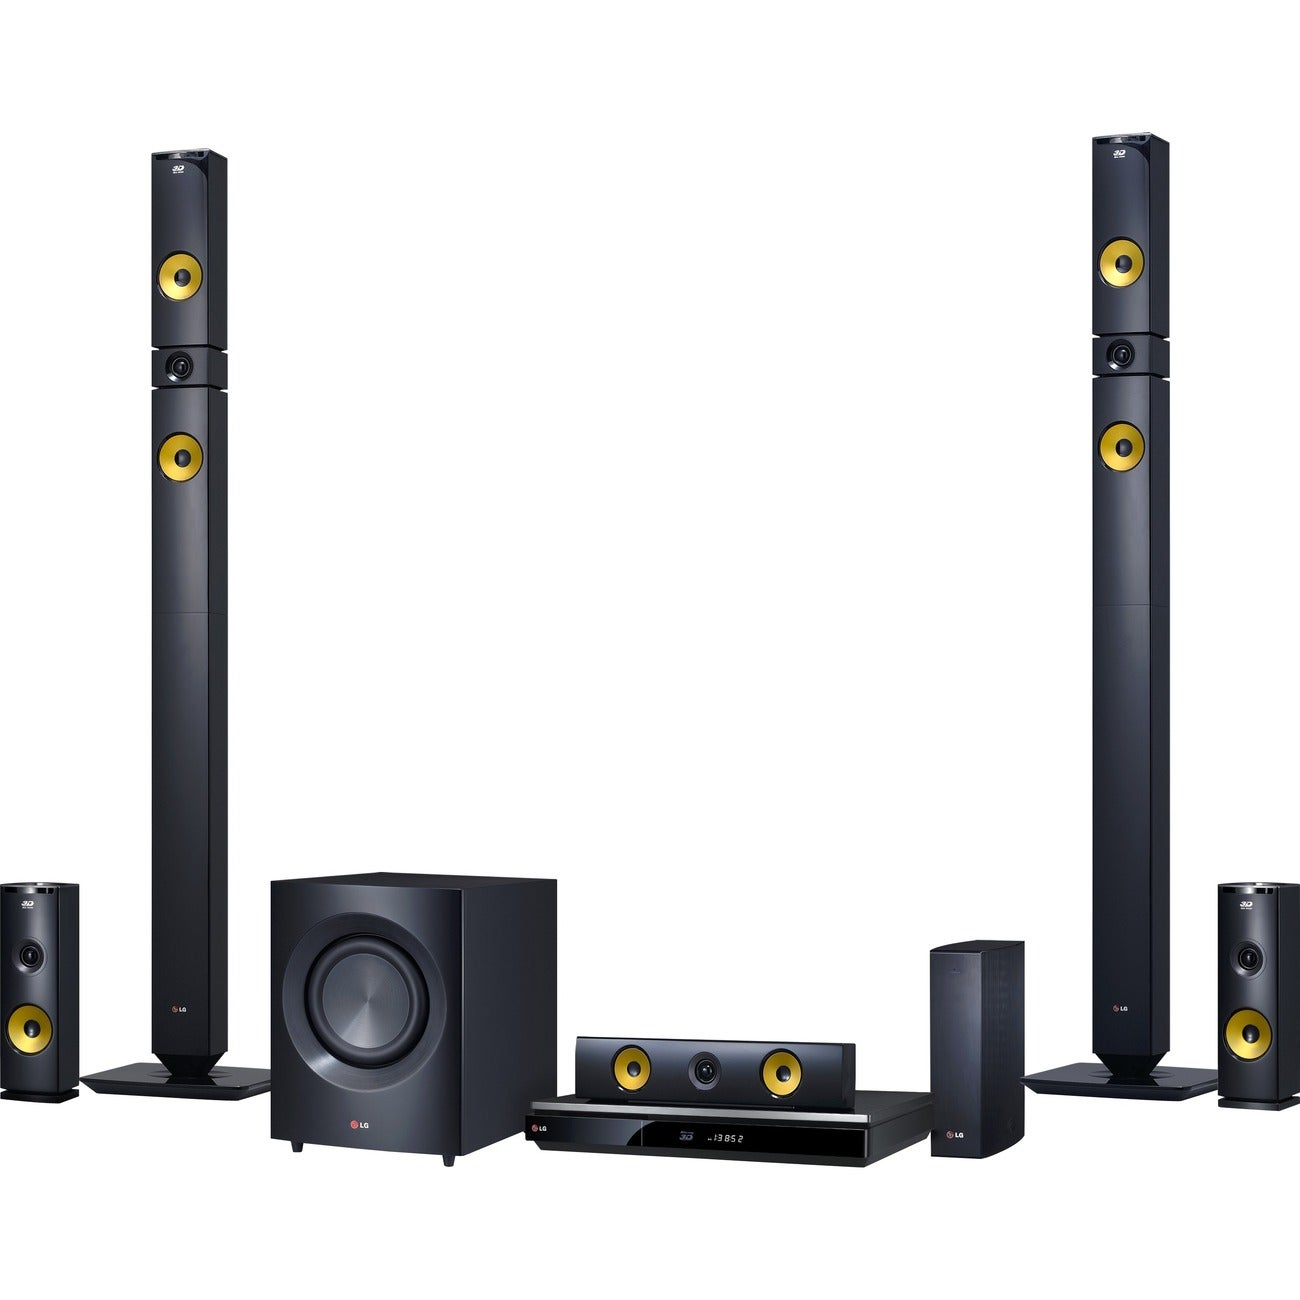 LG BH9430PW 1460W 9.1ch 3D Smart Home Theater System with Wireless Speakers